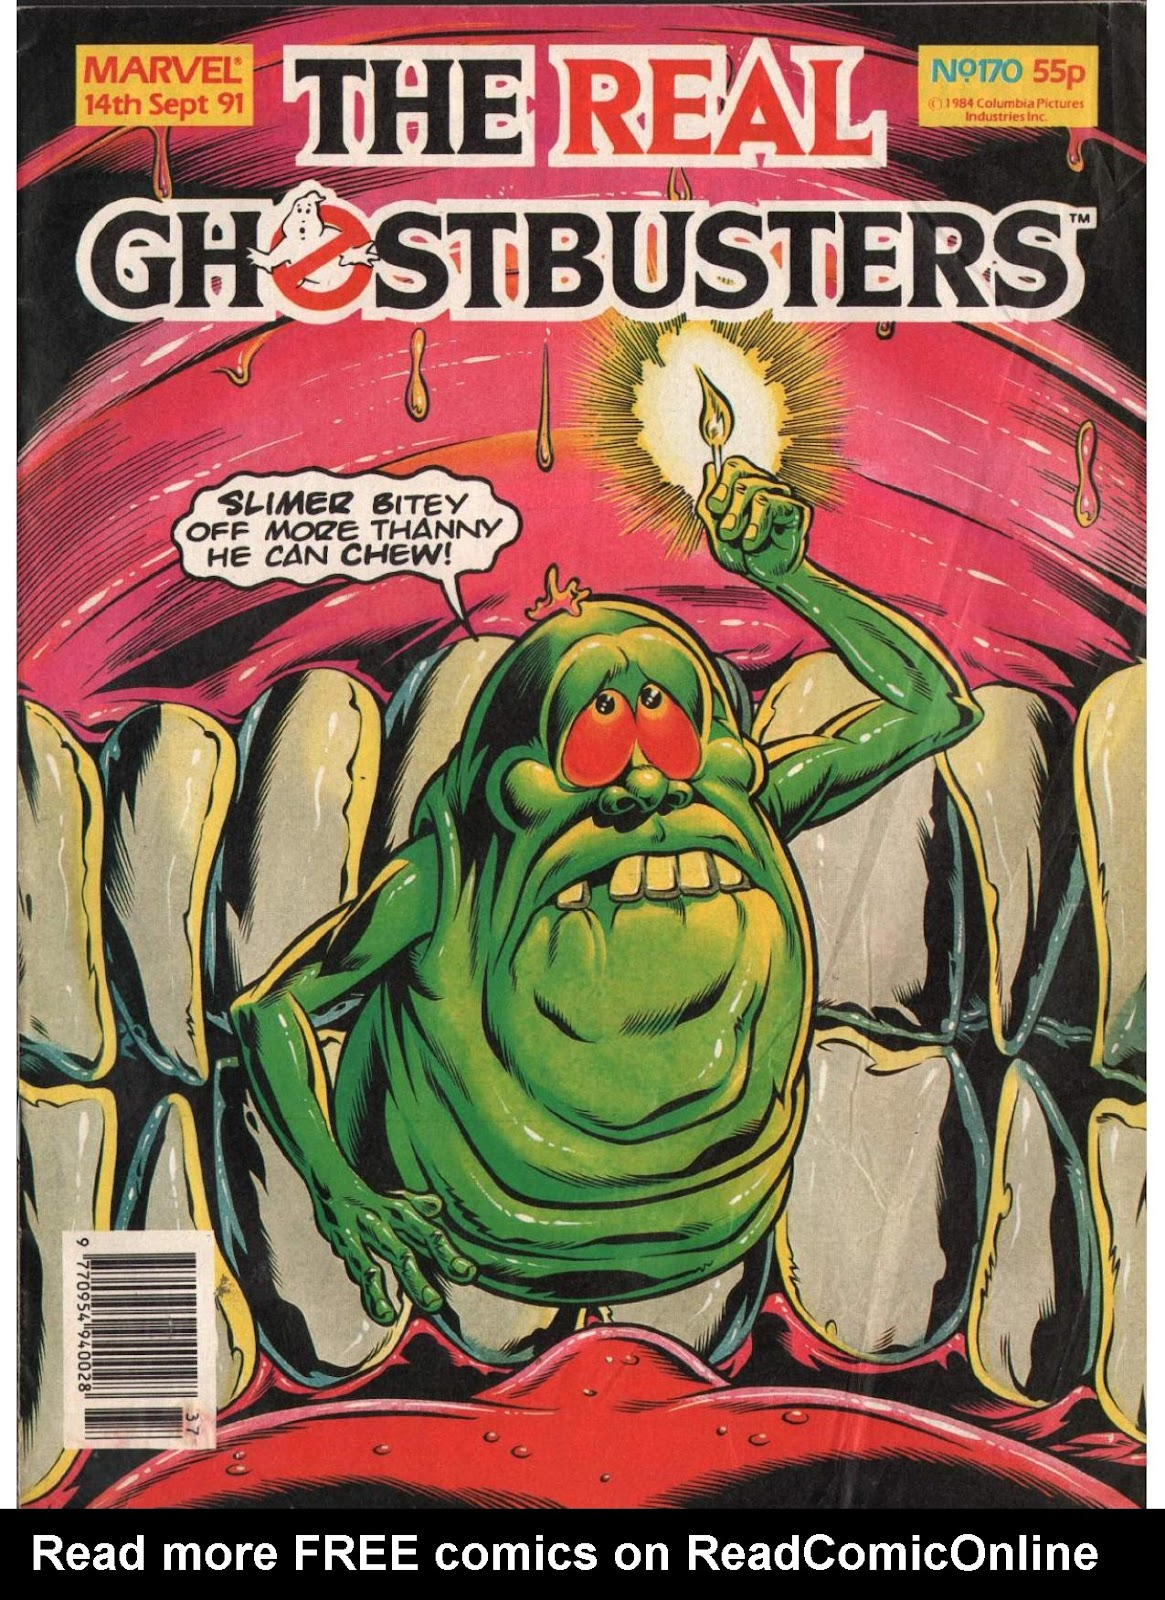 The Real Ghostbusters 170 Page 1